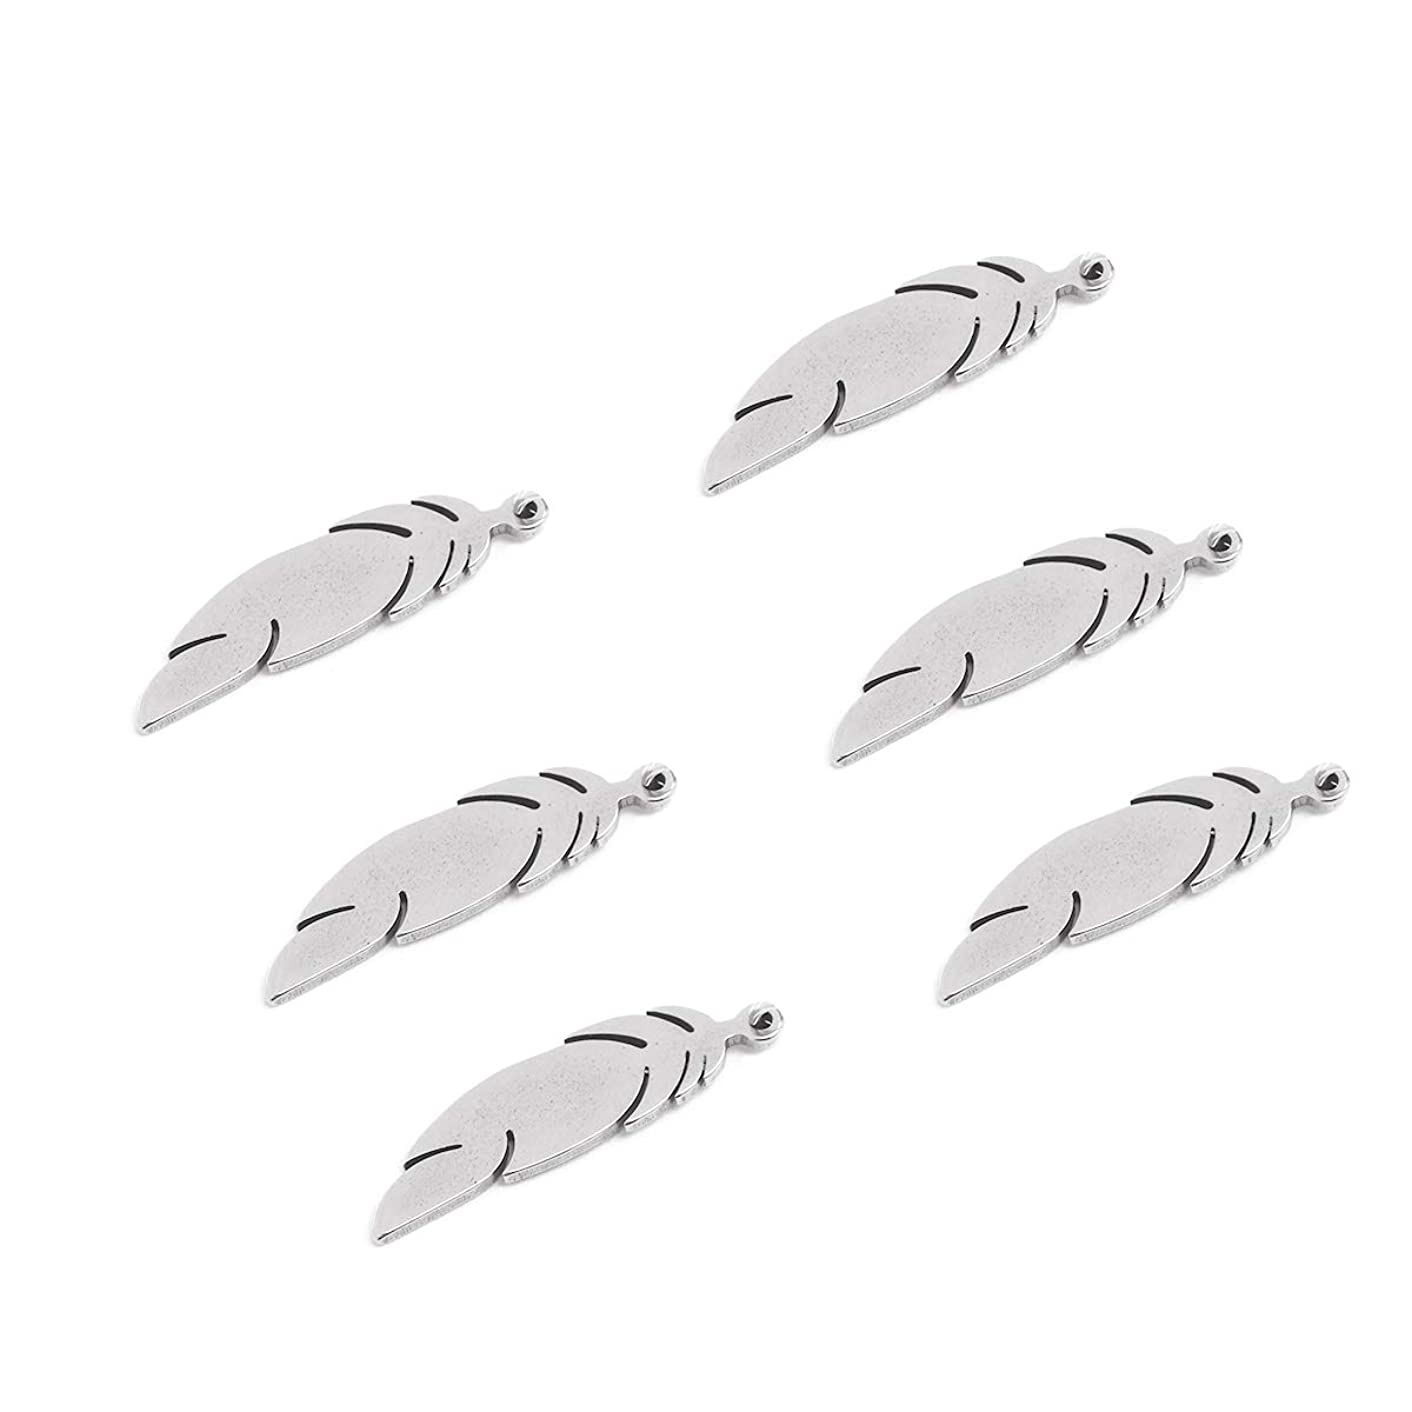 Tiparts 20pcs Gold Silver Stainless Steel Feather Charms Pendants Jewelry Making Accessories DIY (Silver)